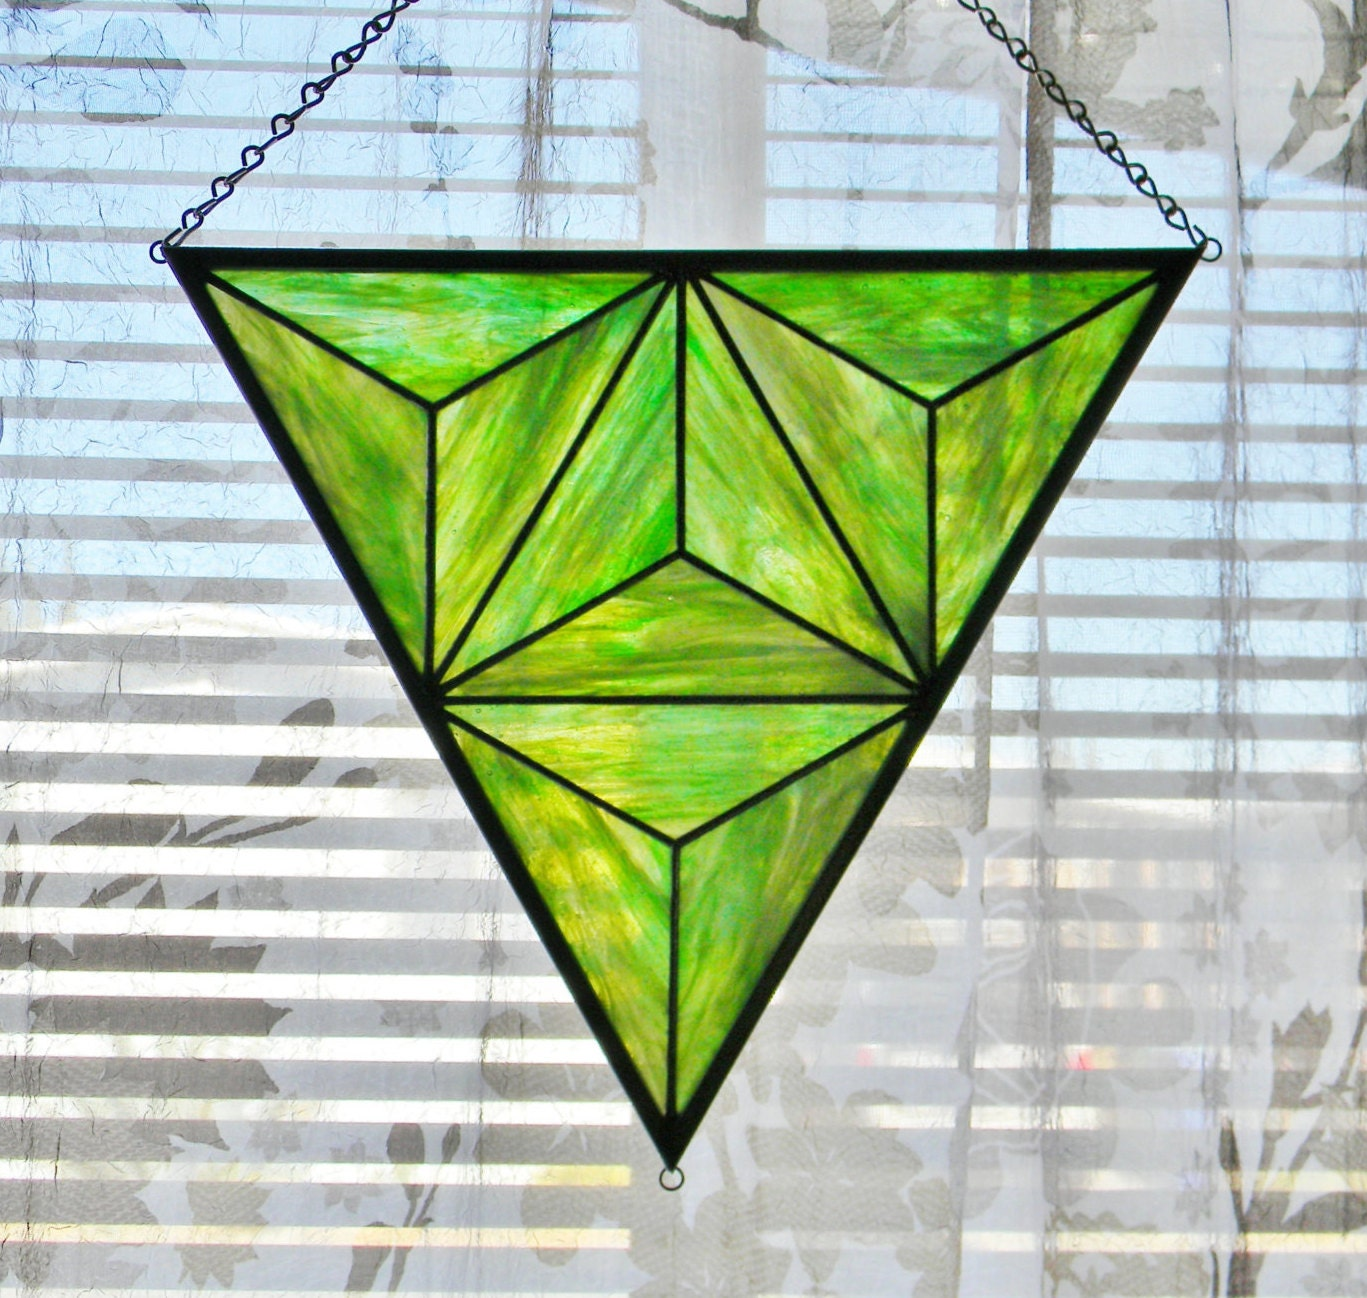 Geometric Stained Glass Window Panel in Iridescent Green